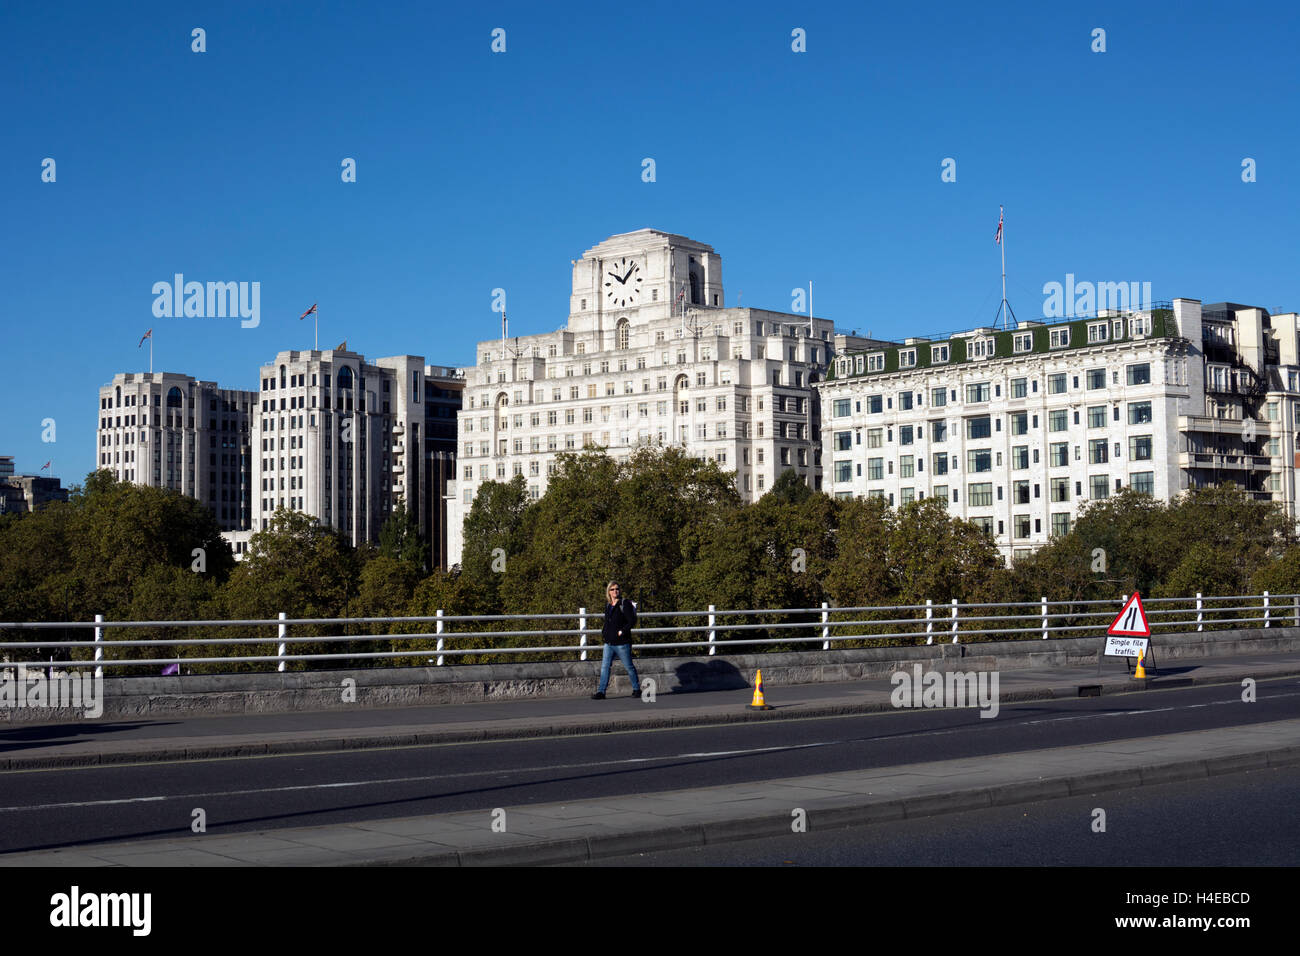 View towards Shell-Mex House from Waterloo Bridge, London, UK Stock Photo